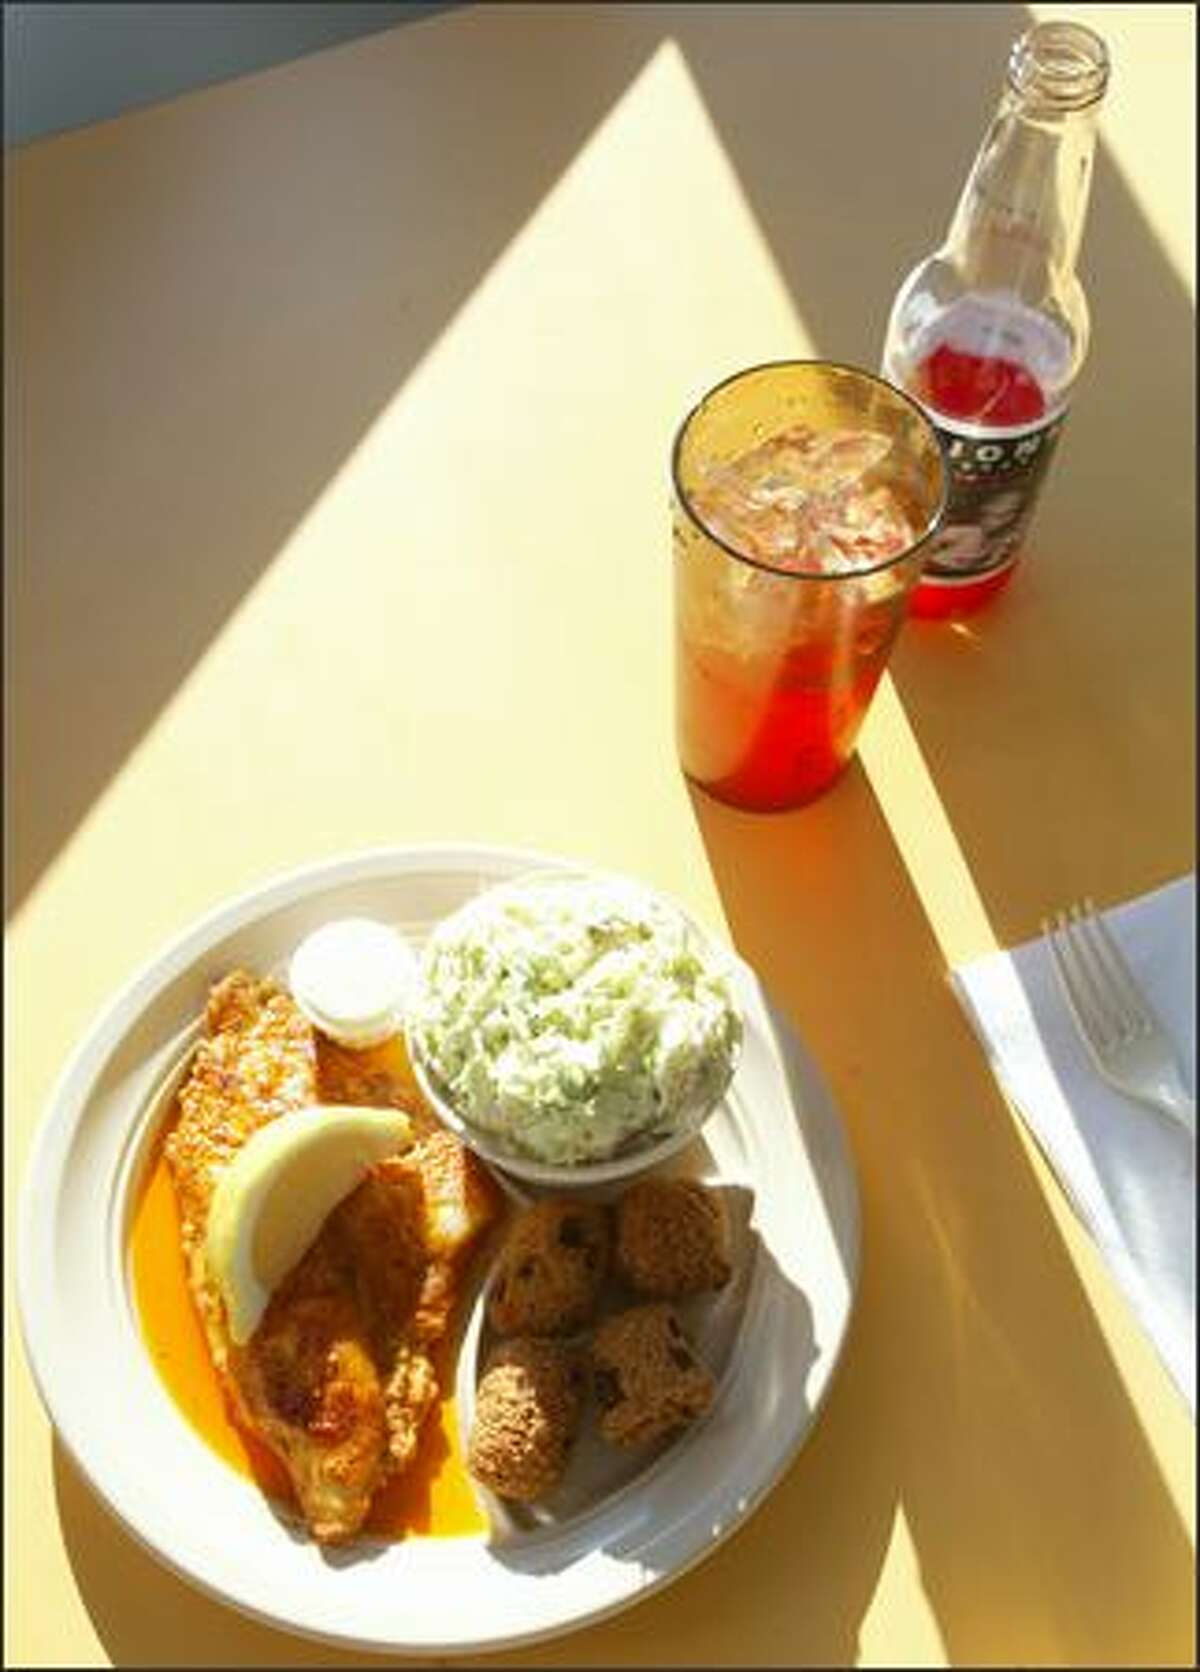 Every Tuesday the special is Cajun Style Catfish at Catfish Corner in the Central District.